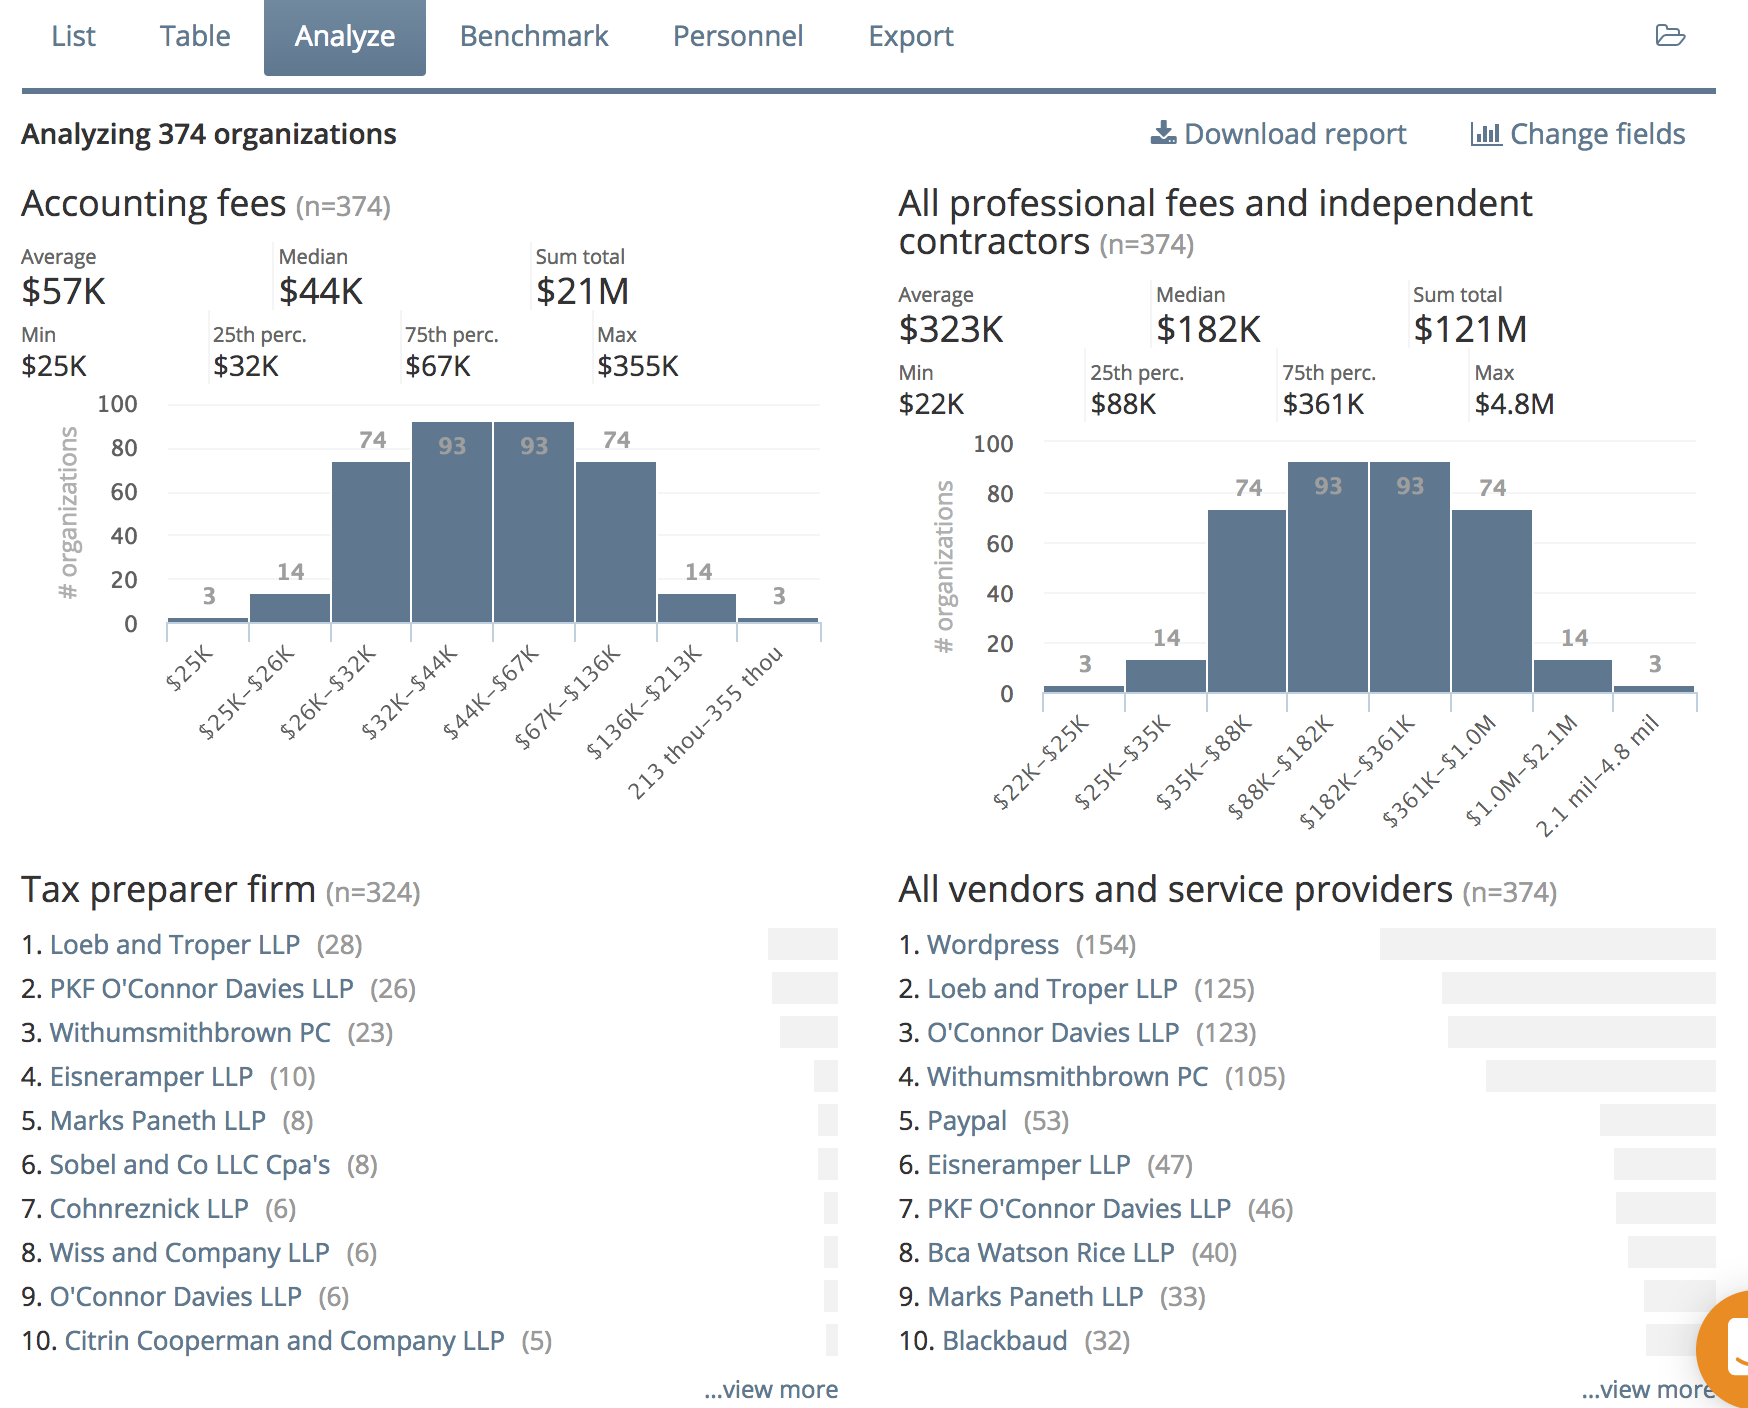 Analyze fee-for-service fields and change your selected fields